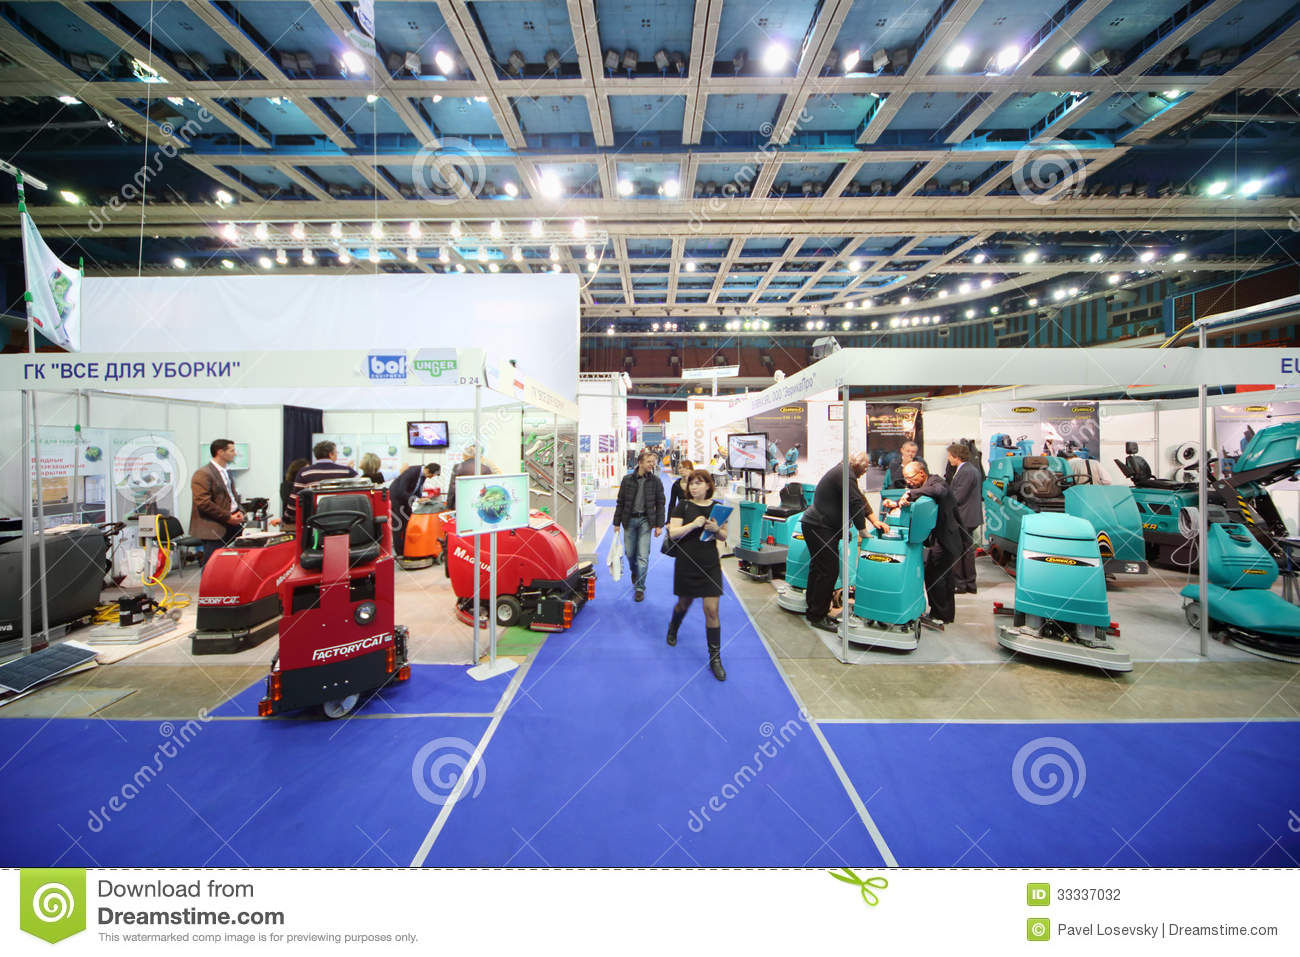 Presentation of machines for cleaning floors